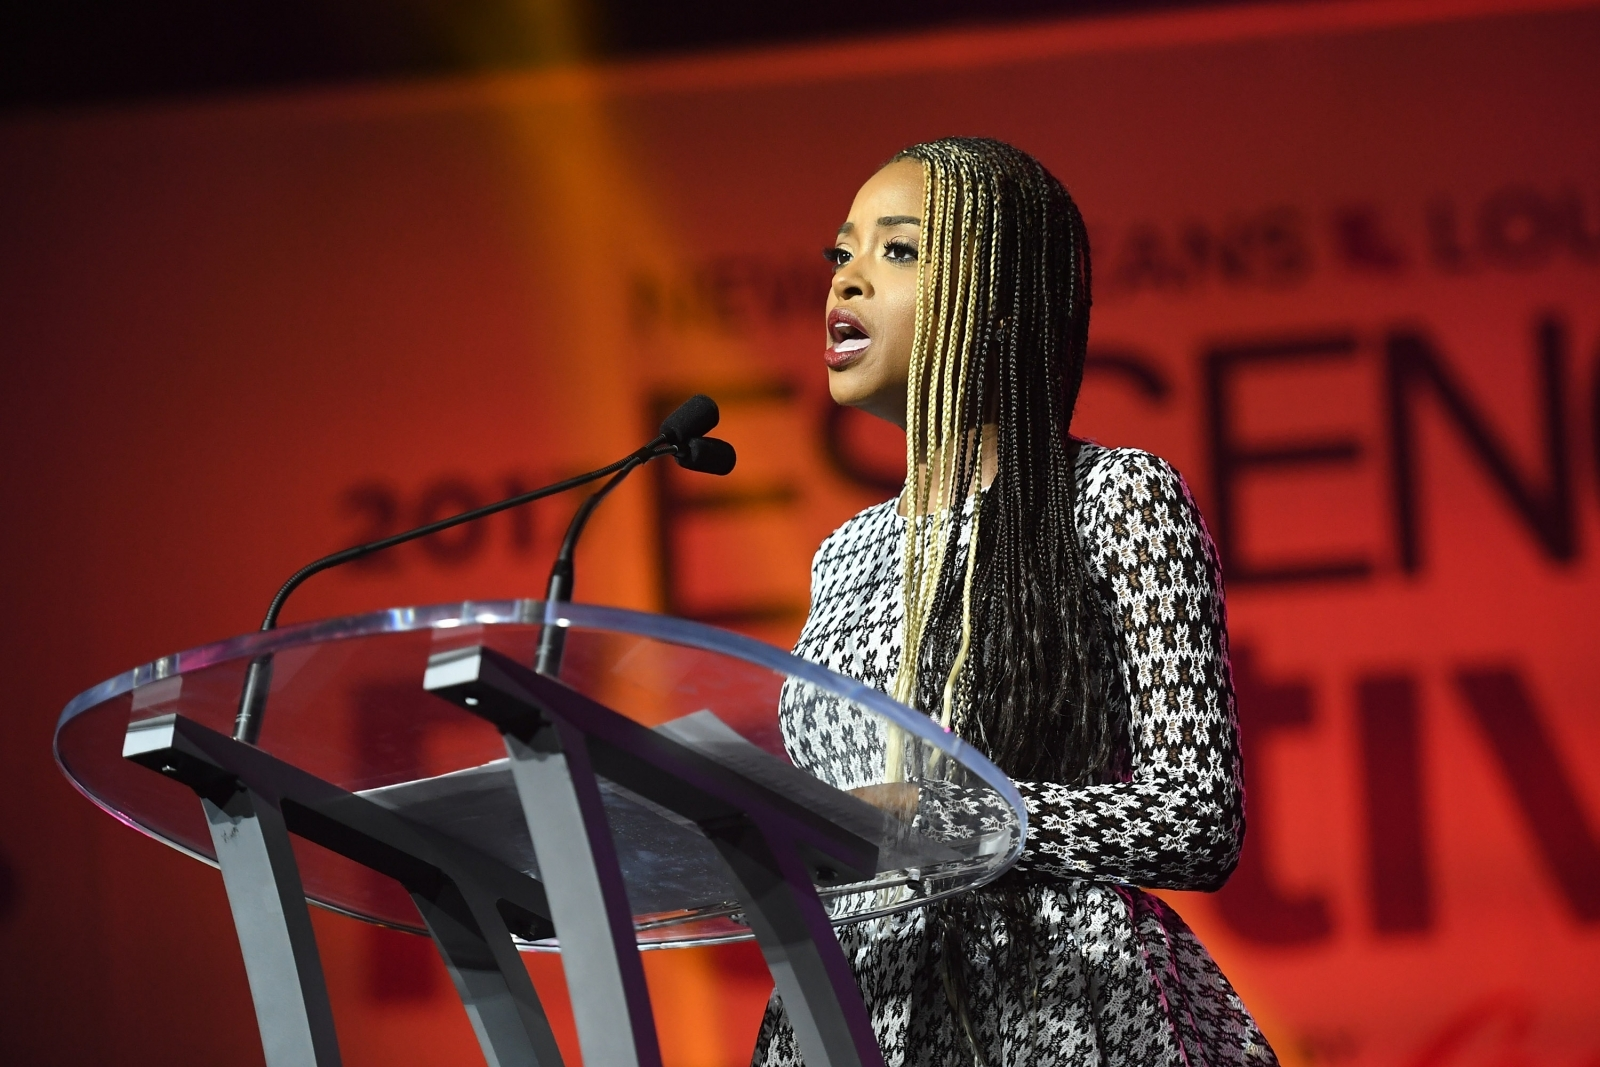 Travel Convention 2017 Founder Of Women 39;s March Tamika Mallory Says 39;white Male